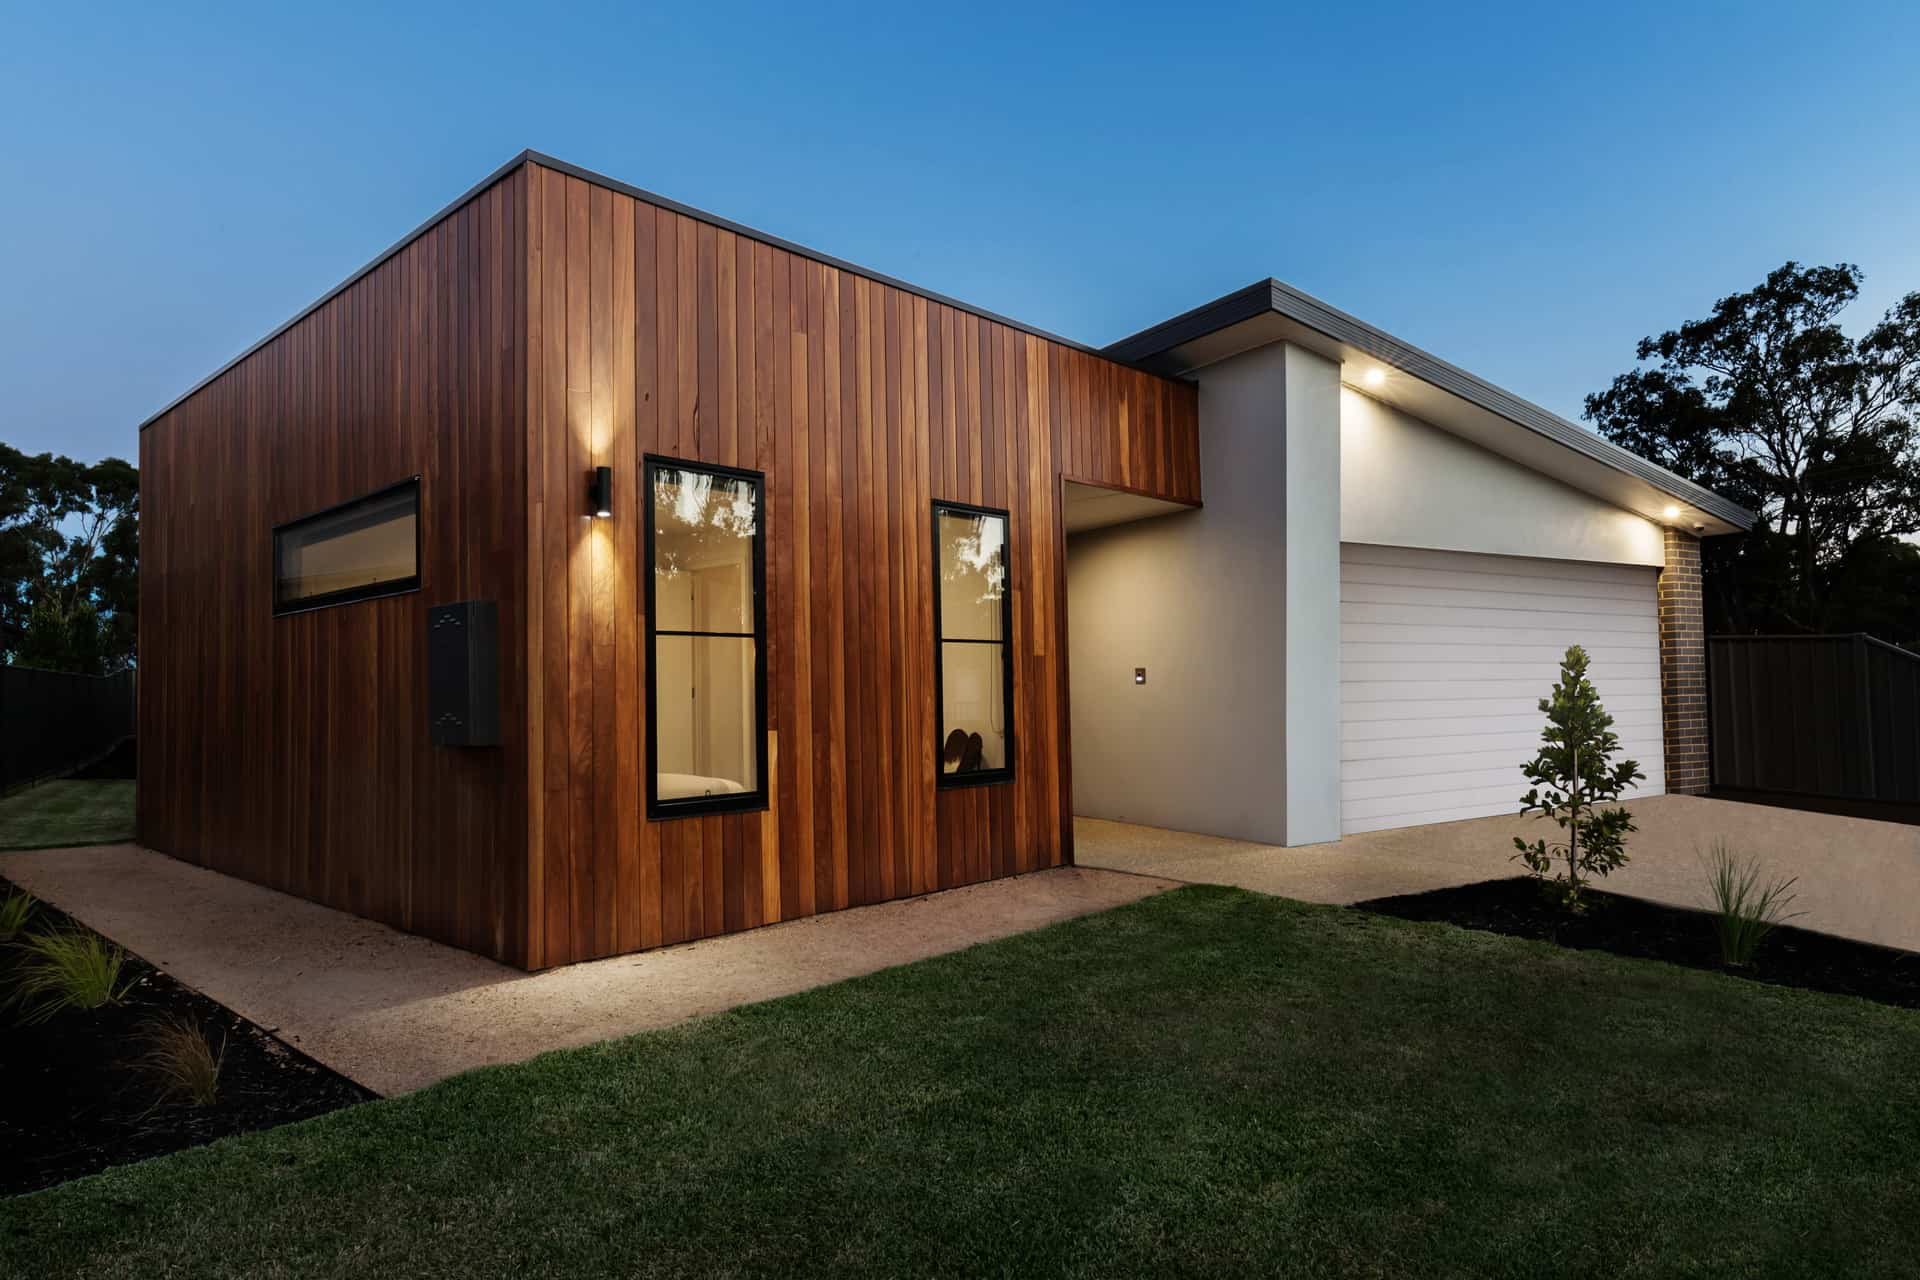 15 Outside Lighting Ideas To Brighten Your Home. Modern wooden trimmed exterior and whitewashed other part of the house